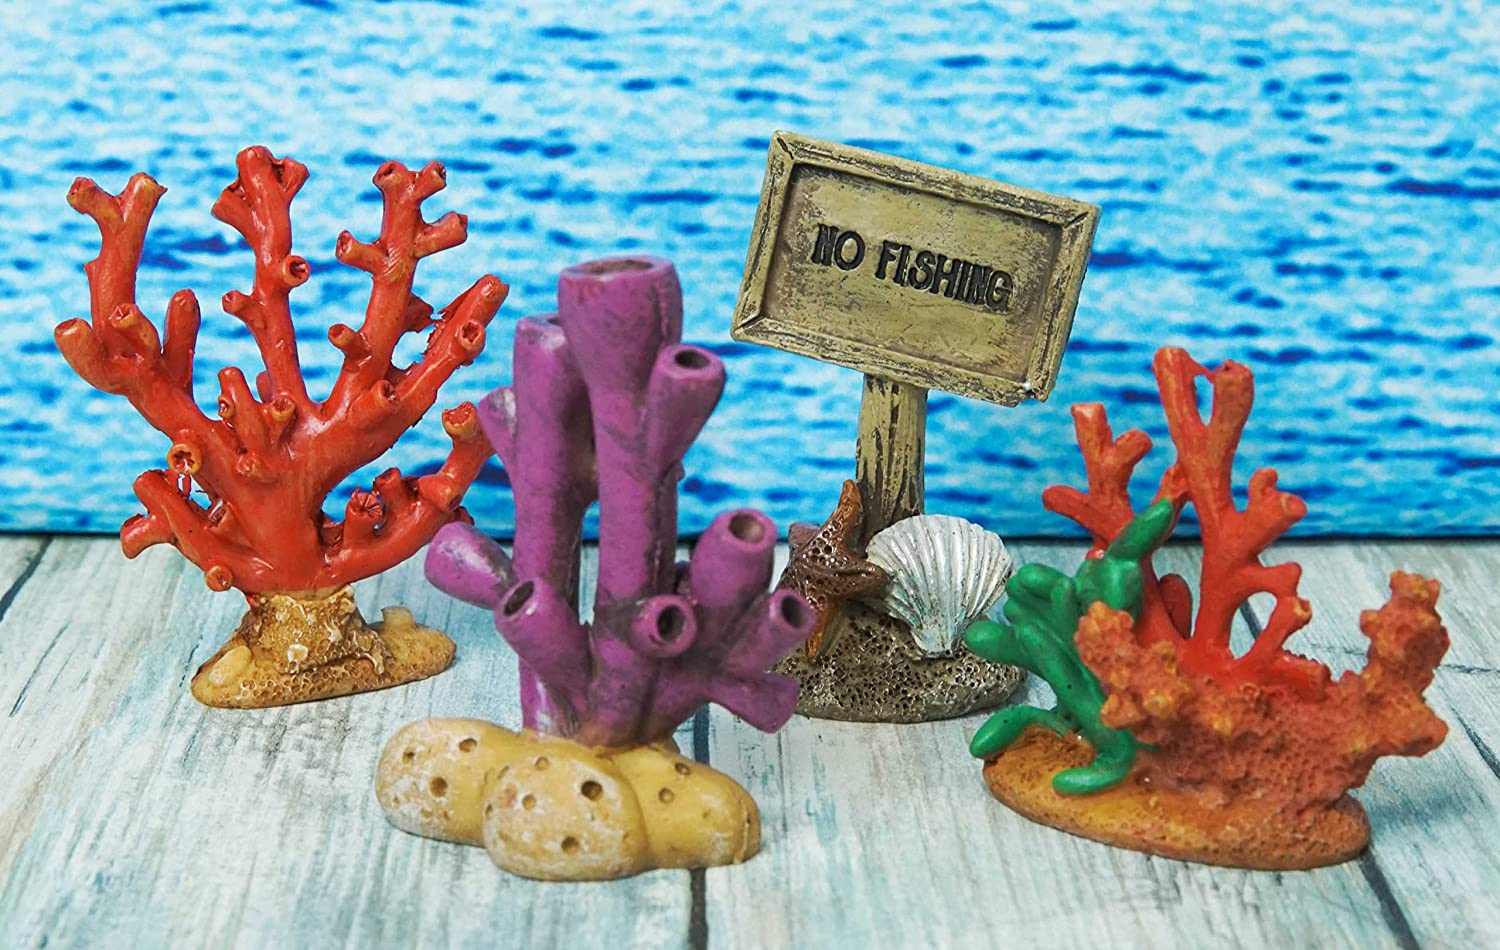 Ebros Whimsical Nautical Underwater Themed Reef Corals No Fishing Sign Small Dollhouse Miniature Figurines Set of 4 DIY Mermaid Fantasy Collection Statue Home Decor for Terrariums Mini Planters